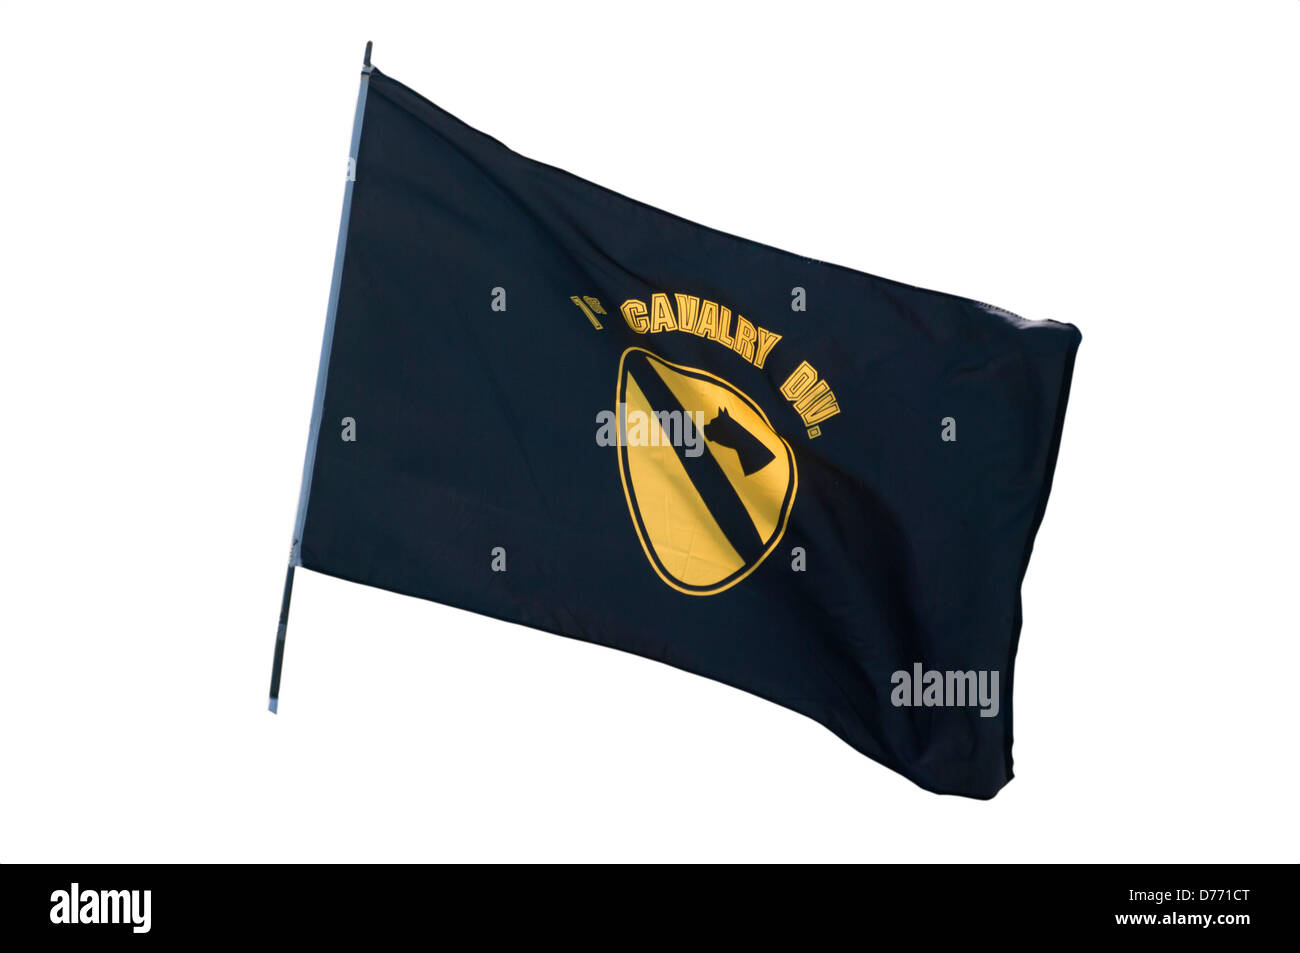 US Army 1st Cavalry Division Flag - Stock Image